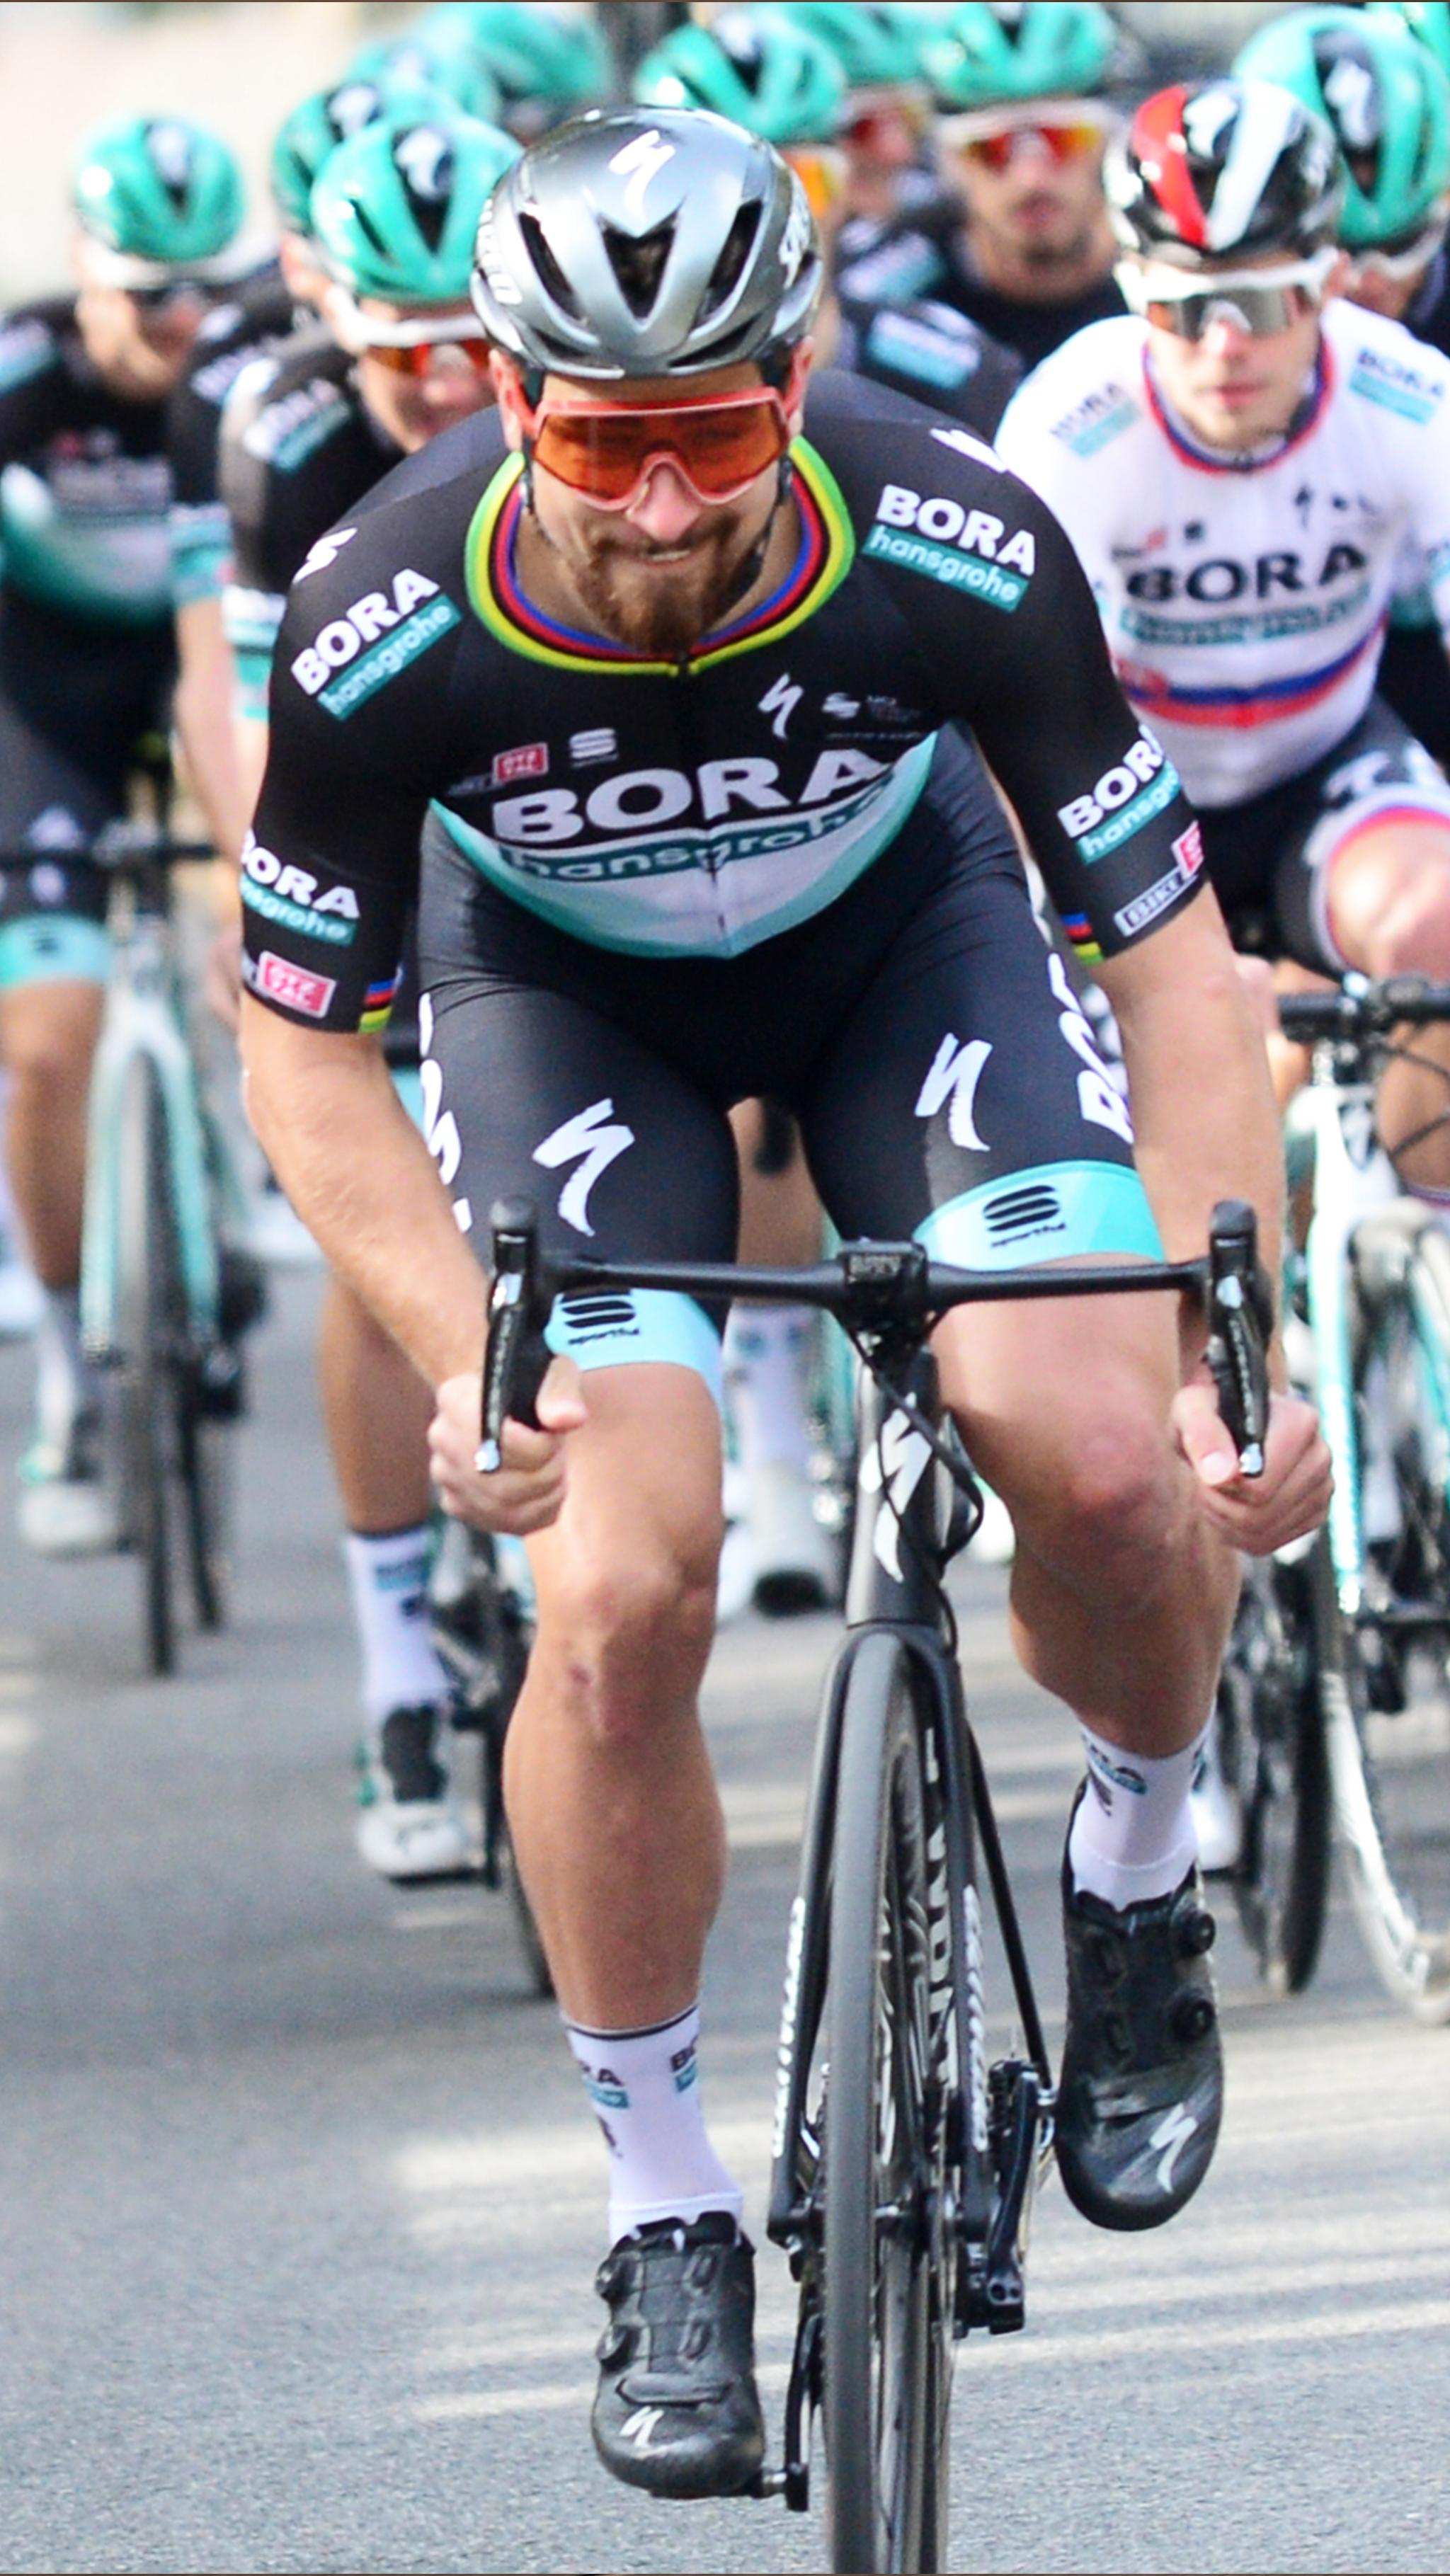 bora-com_Header_Cycling-Team_2048x3639px_mobile.jpg